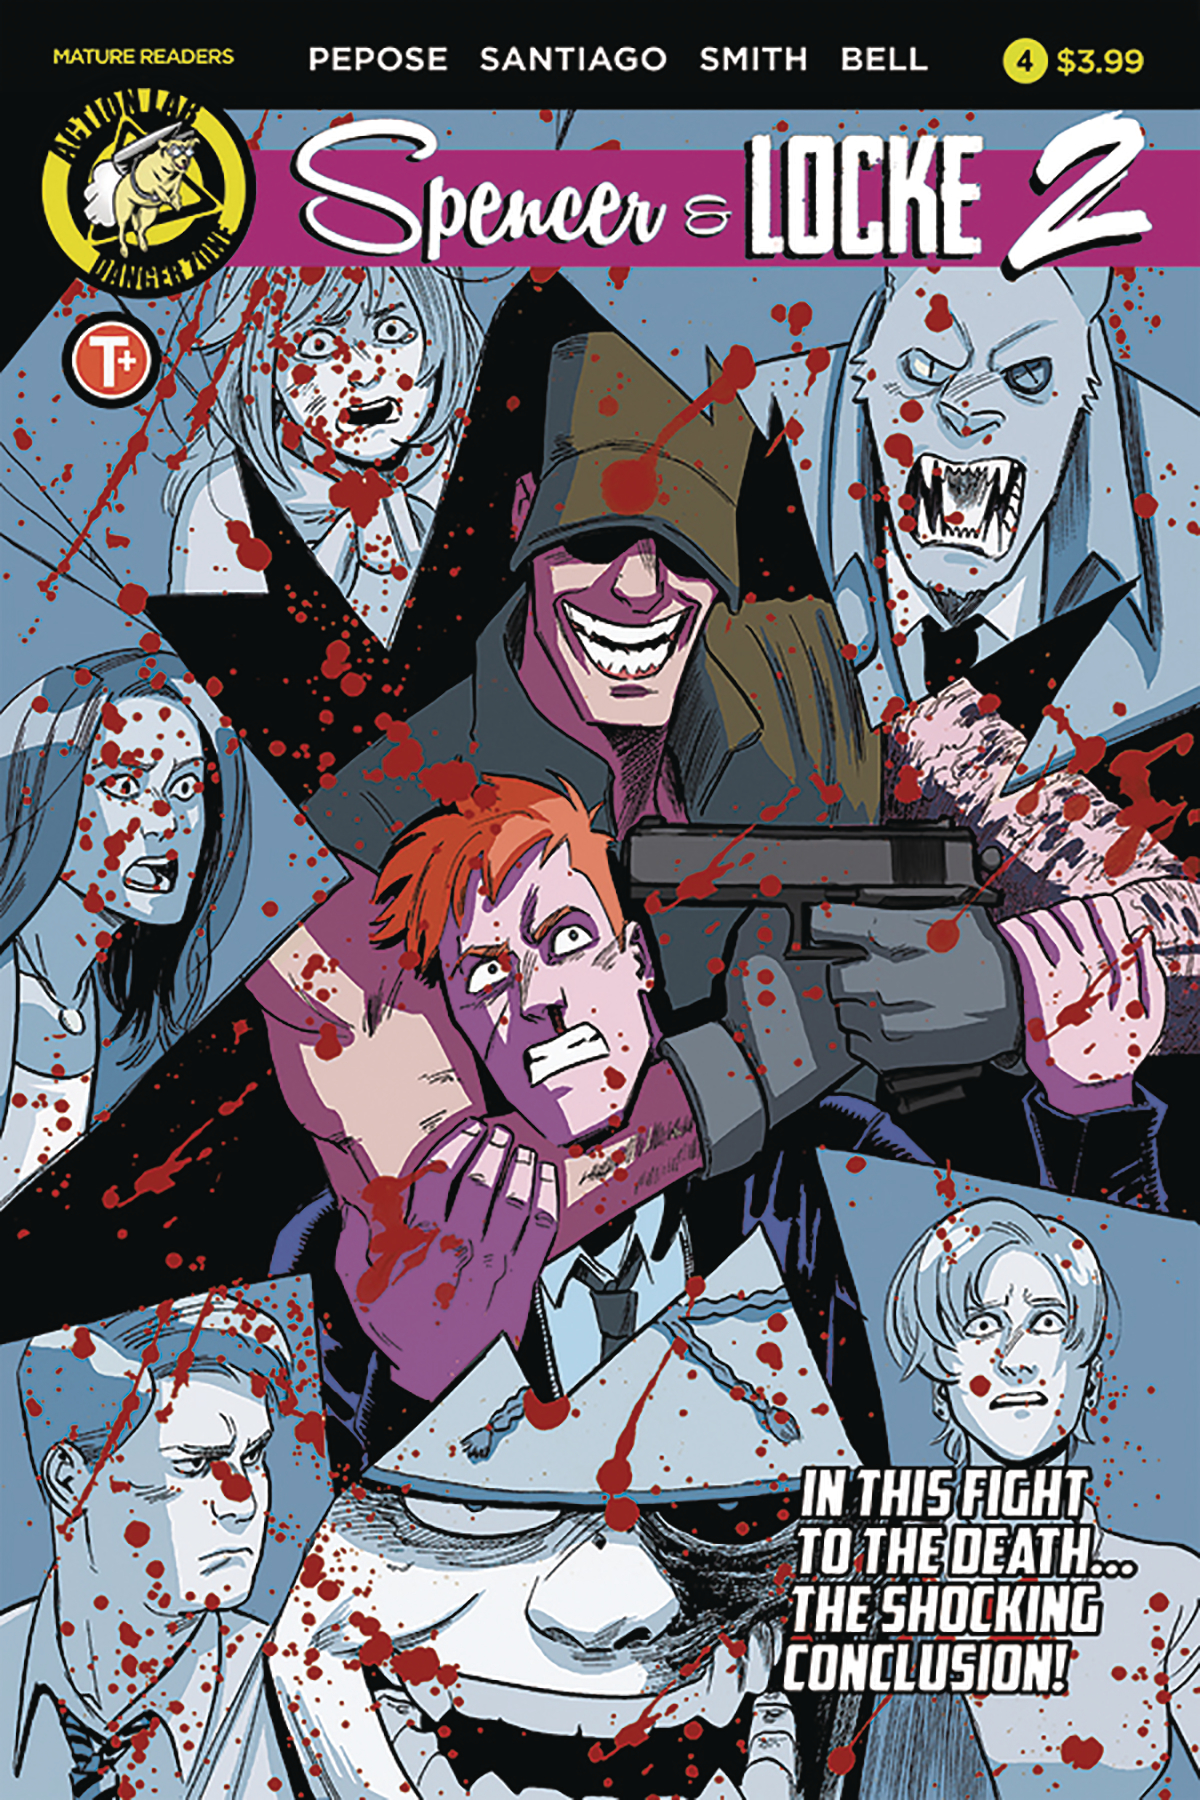 Spencer and Locke 2 #4.jpg